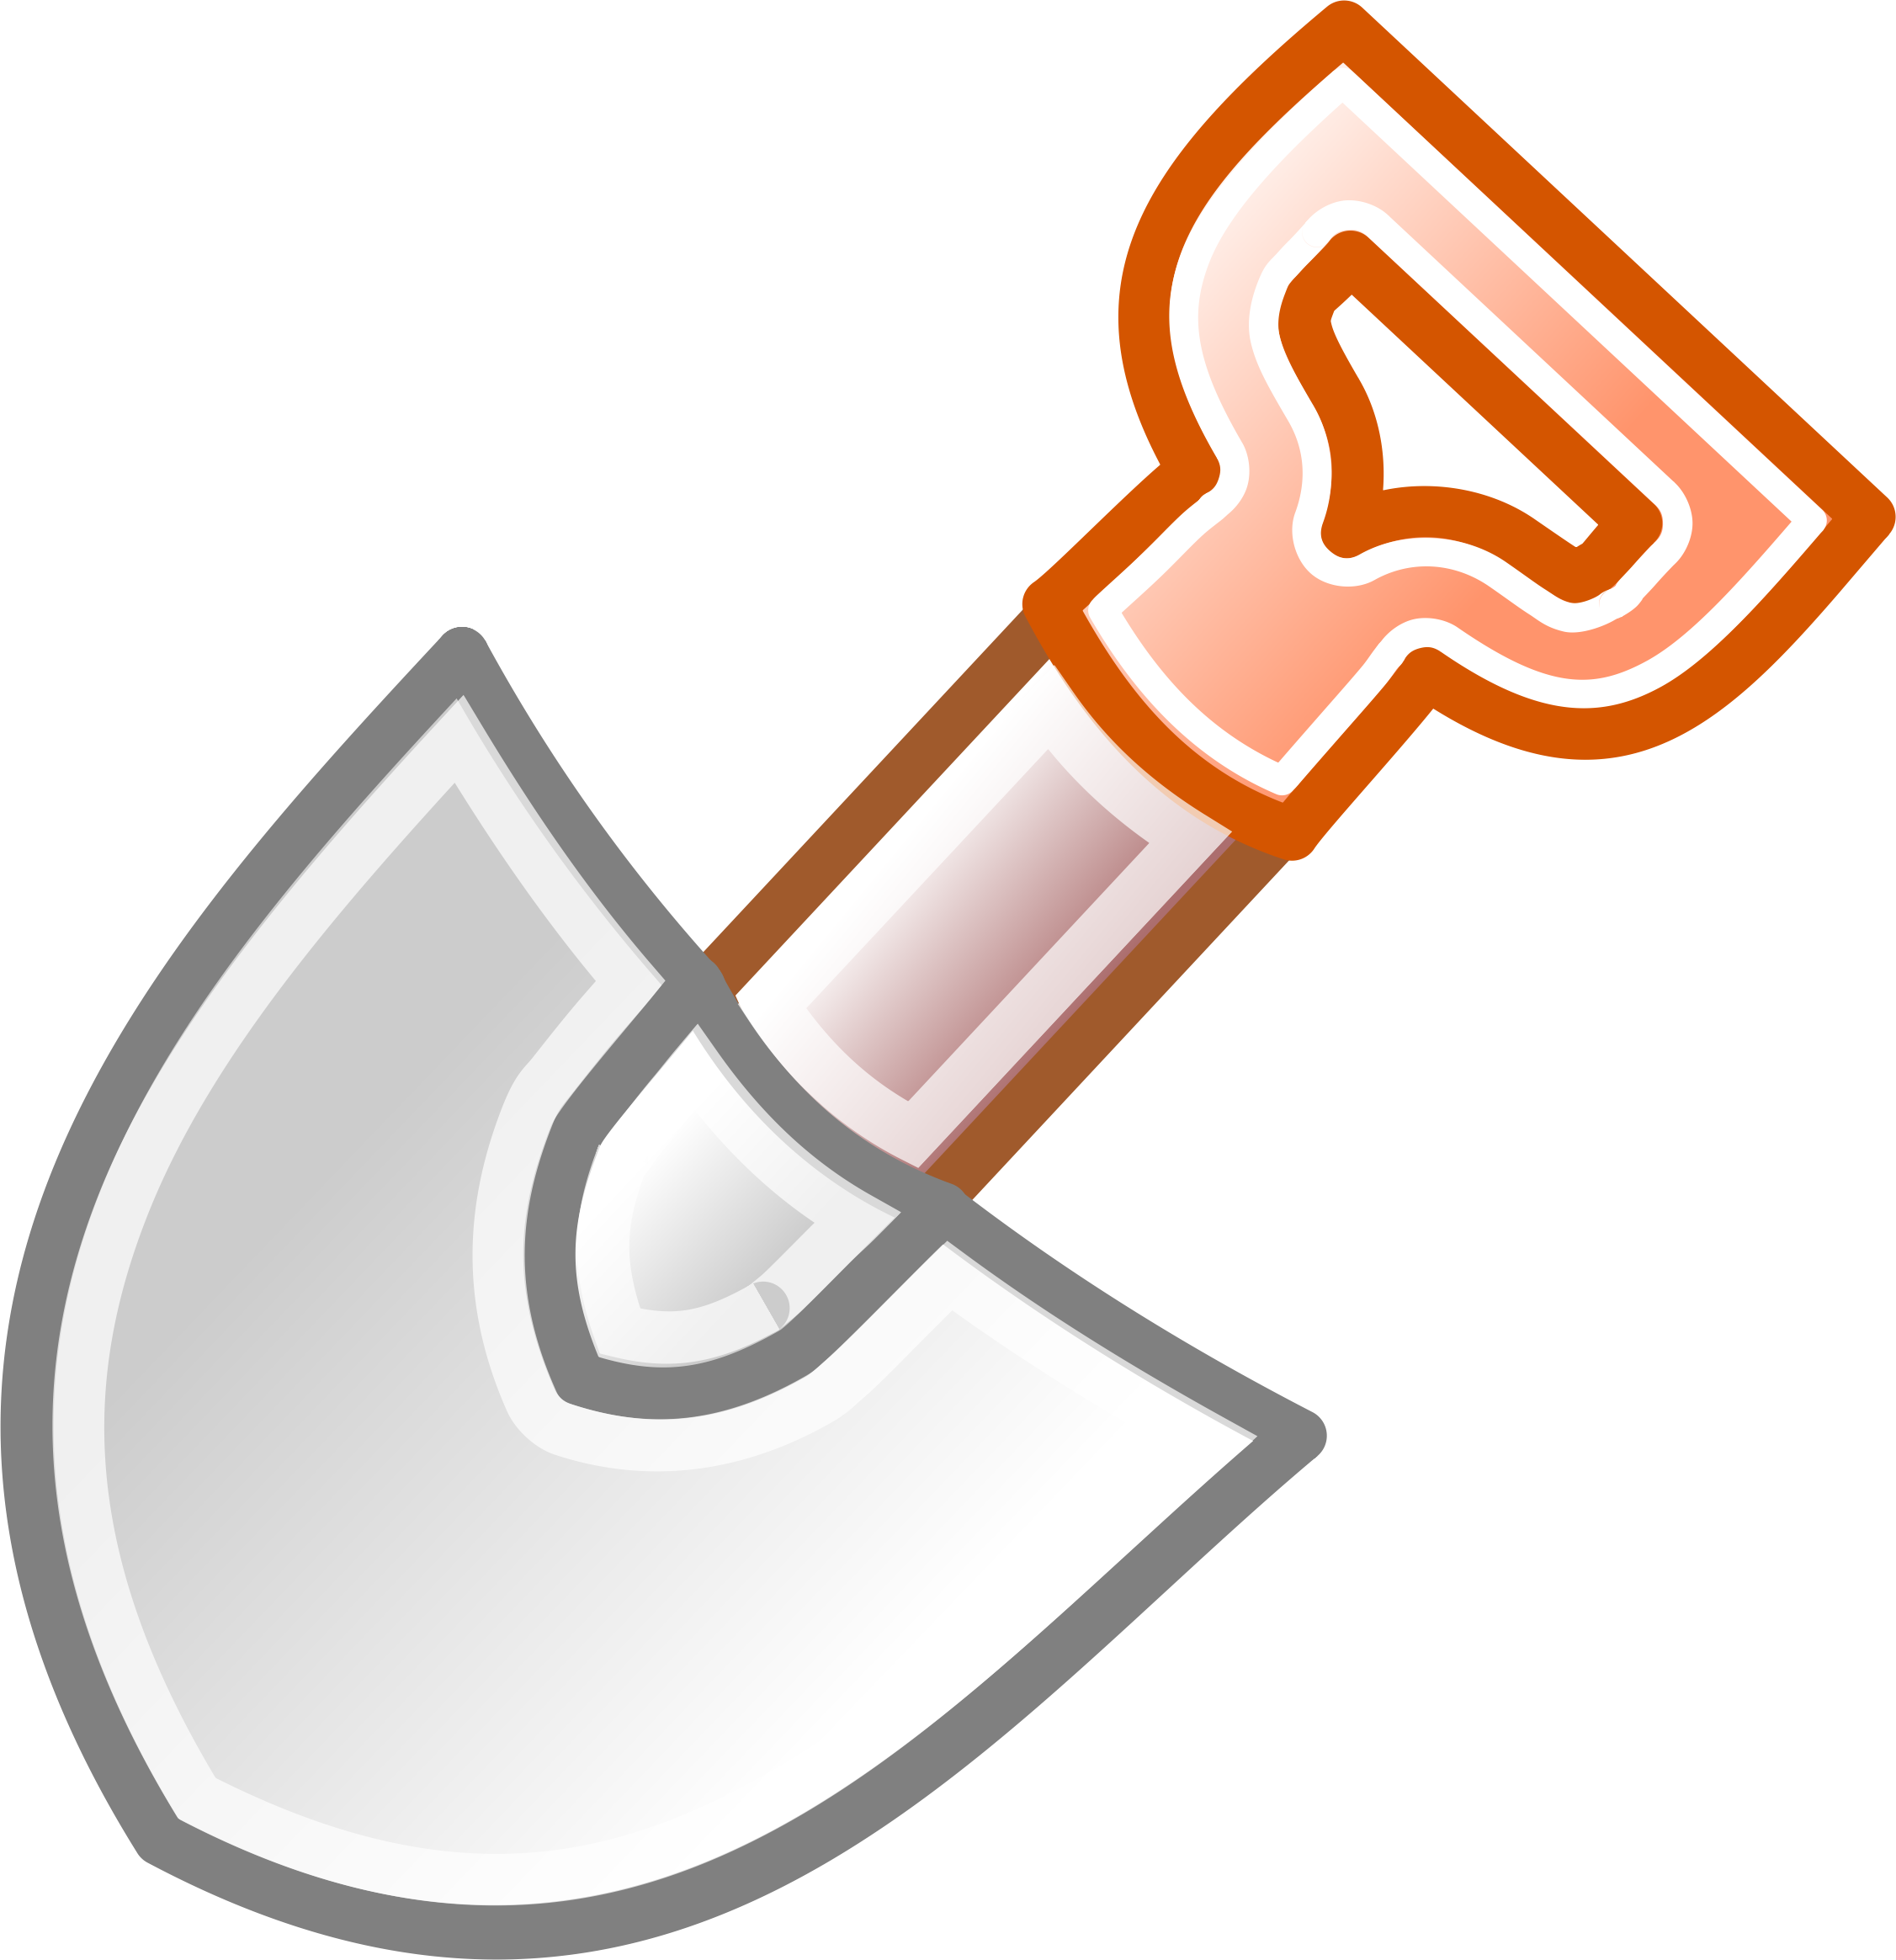 shovel icon by camu72